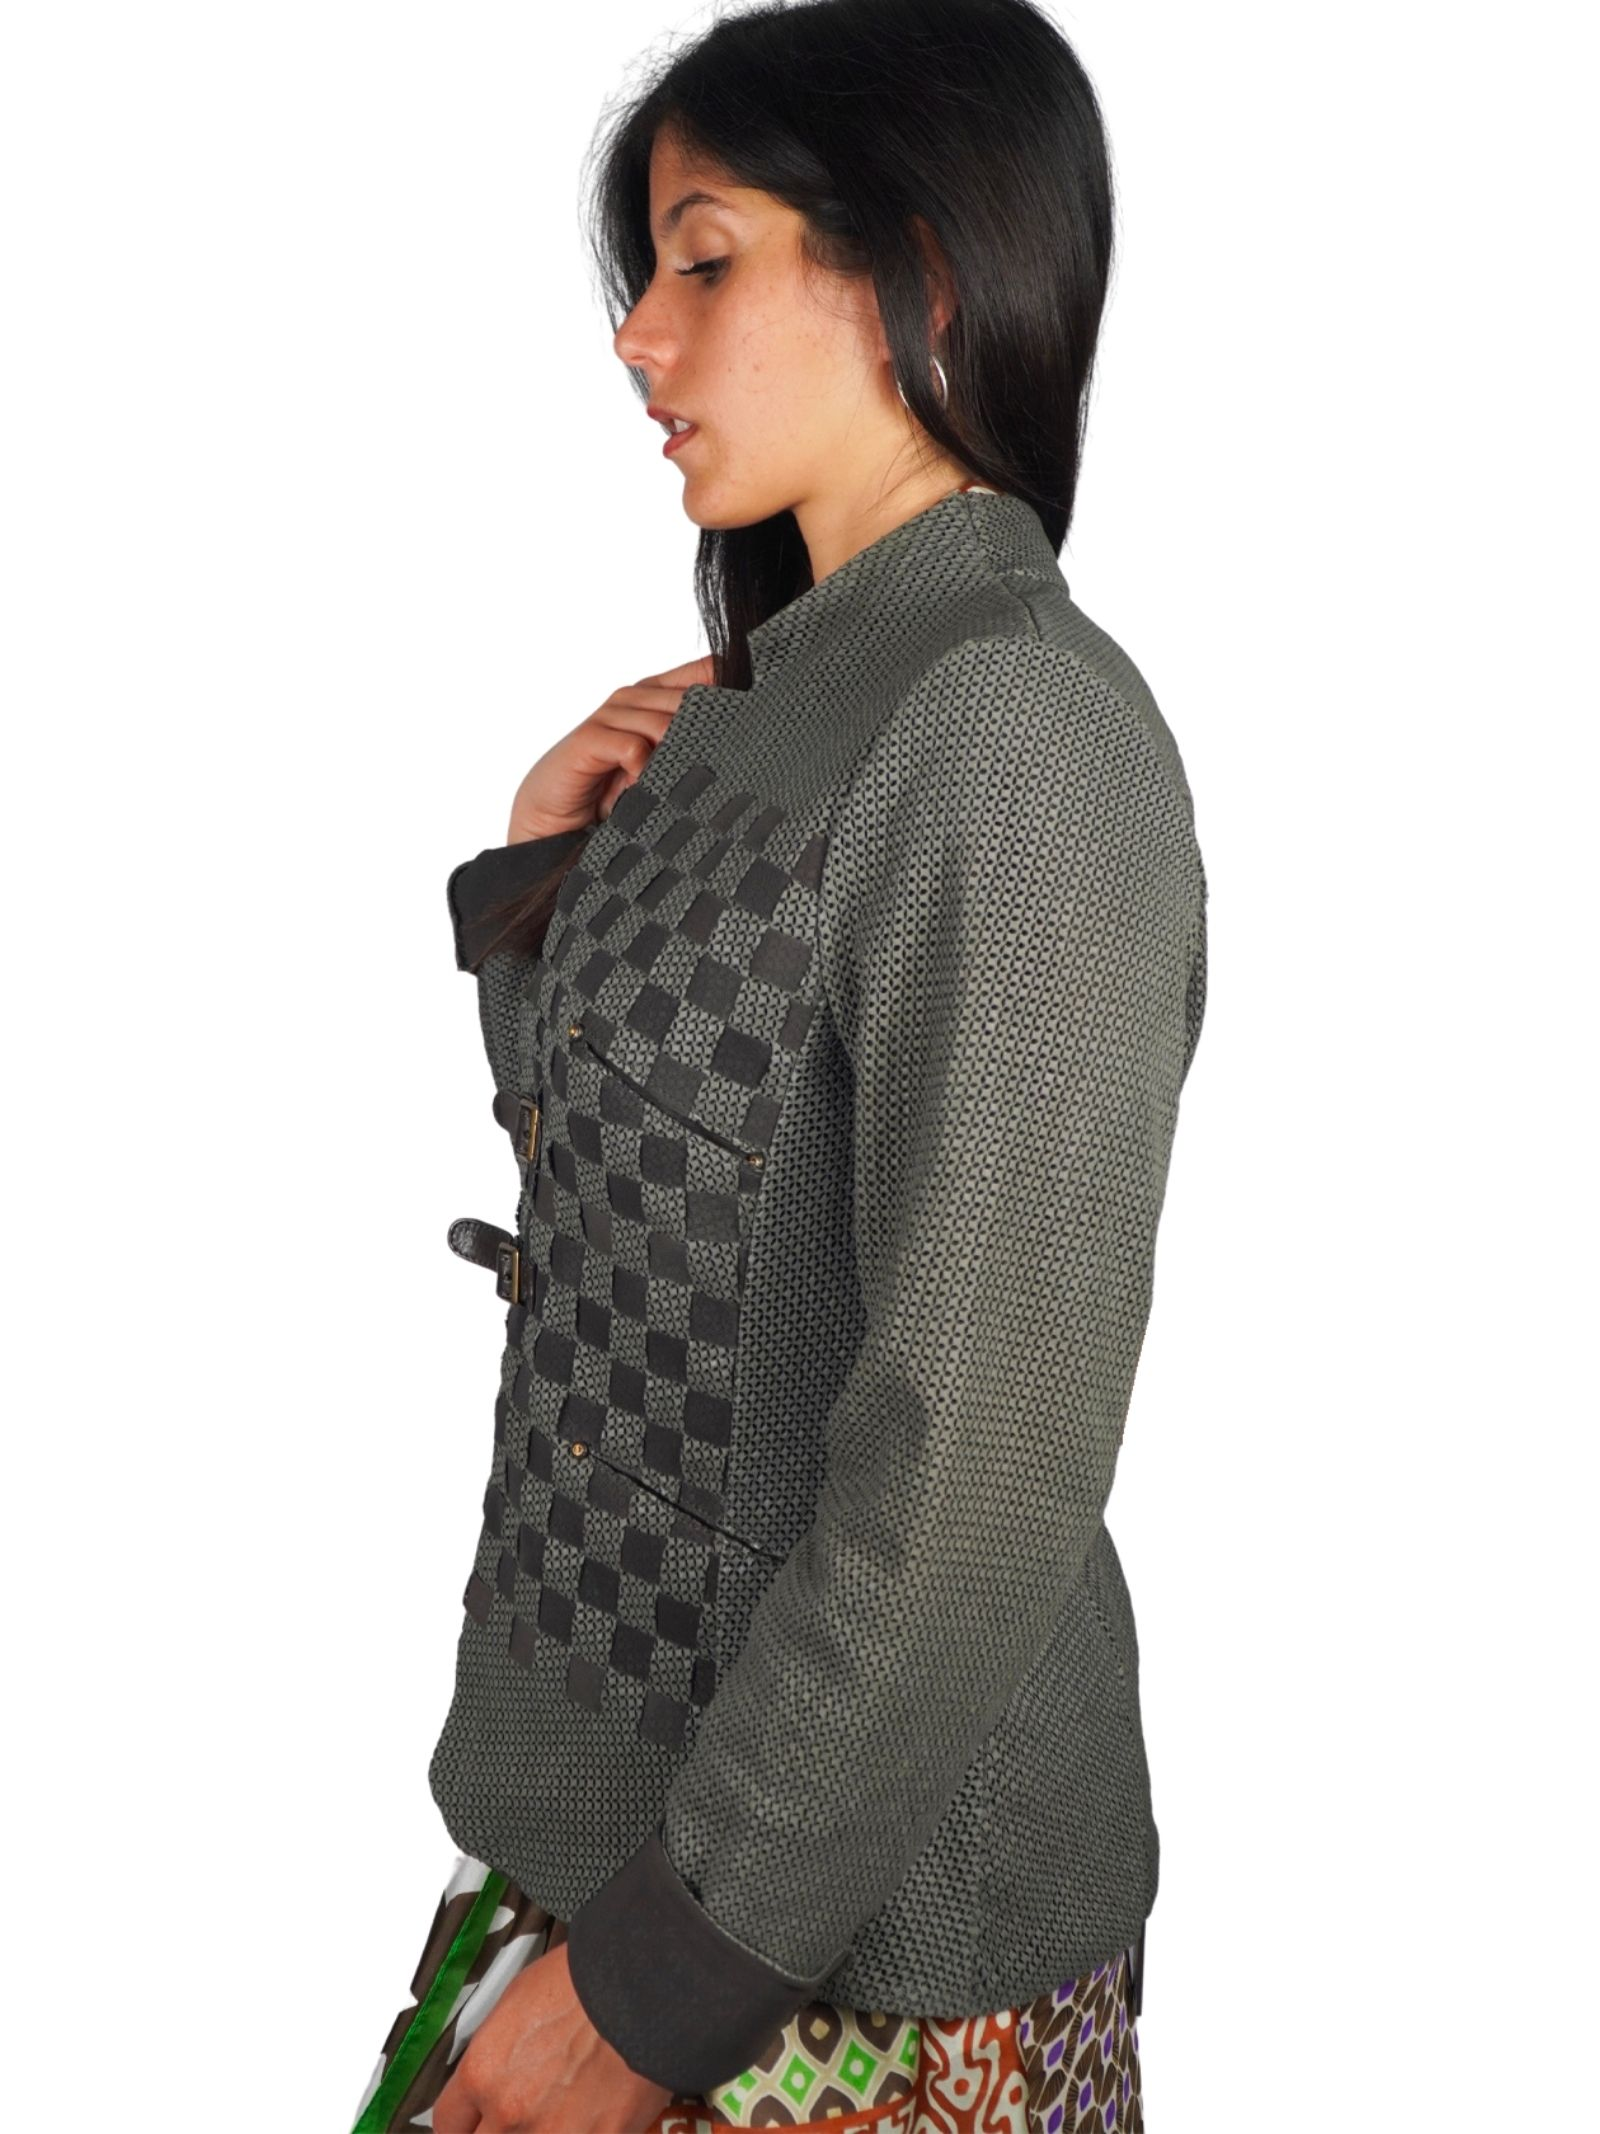 Women's Clothing Mud Perforated Leather Jacket with Straps and Buckles Spatarella | Jackets | 2152021